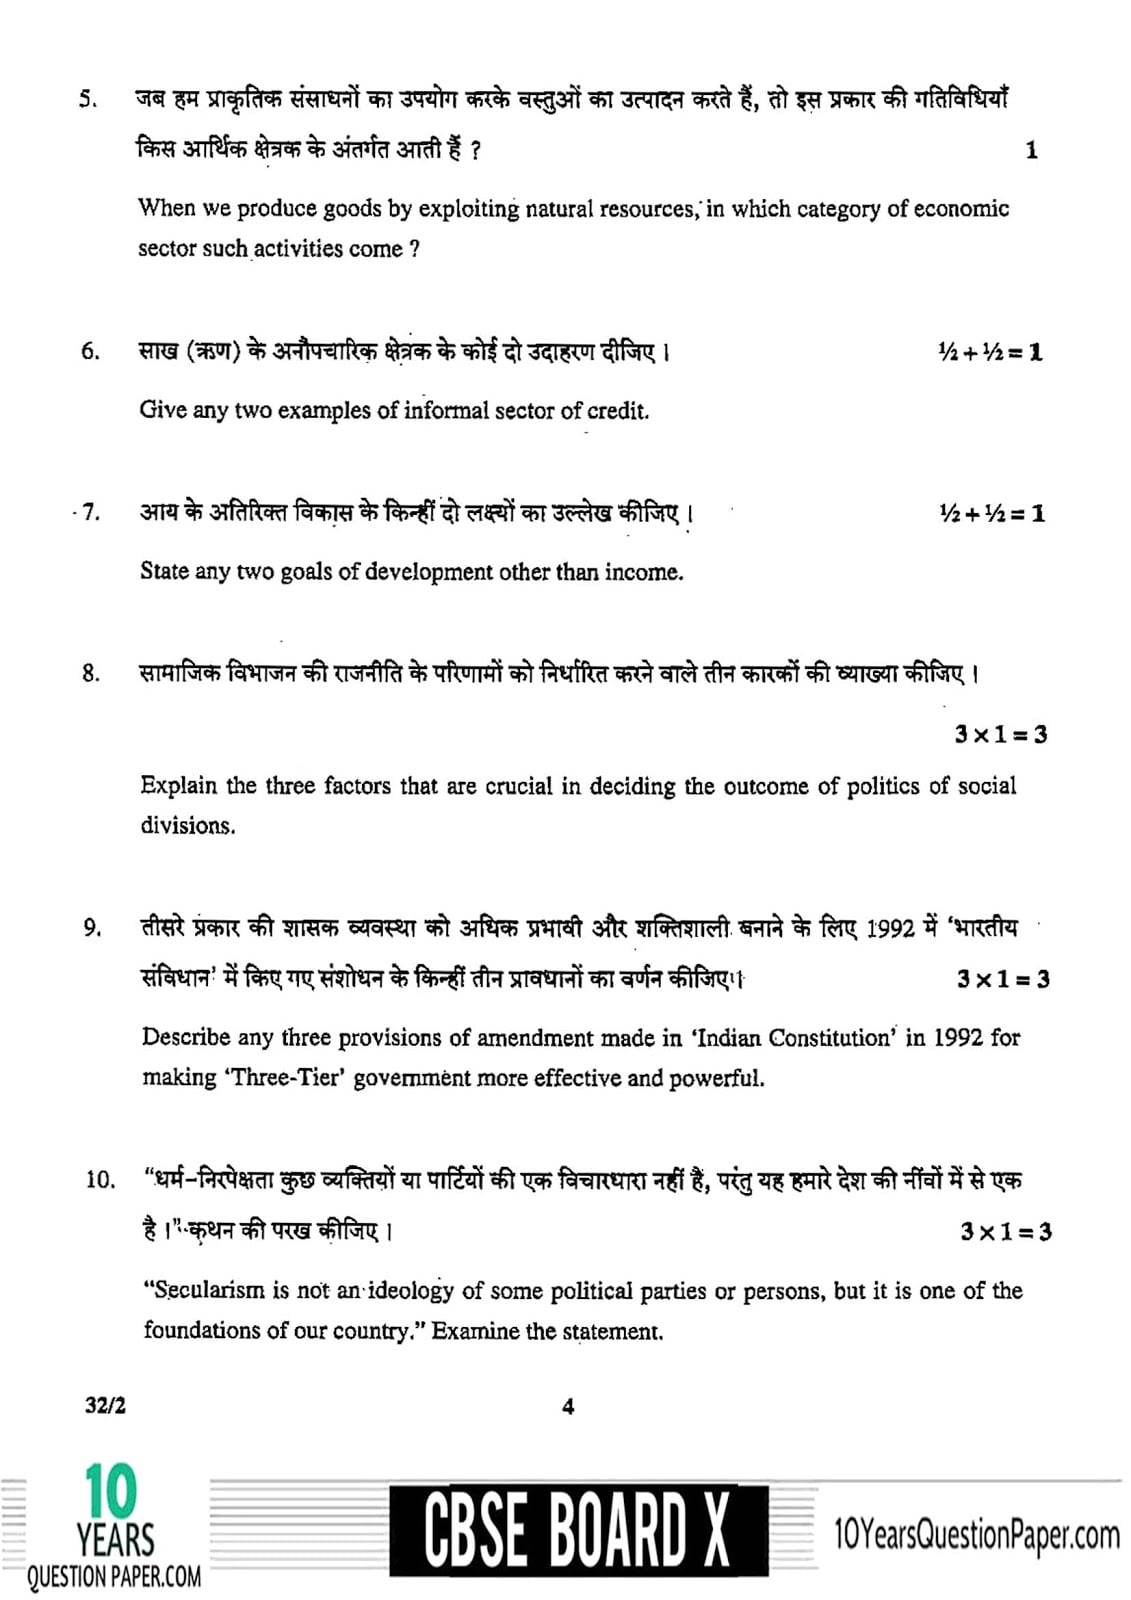 CBSE Class 10 Social Science 2018 Question Paper